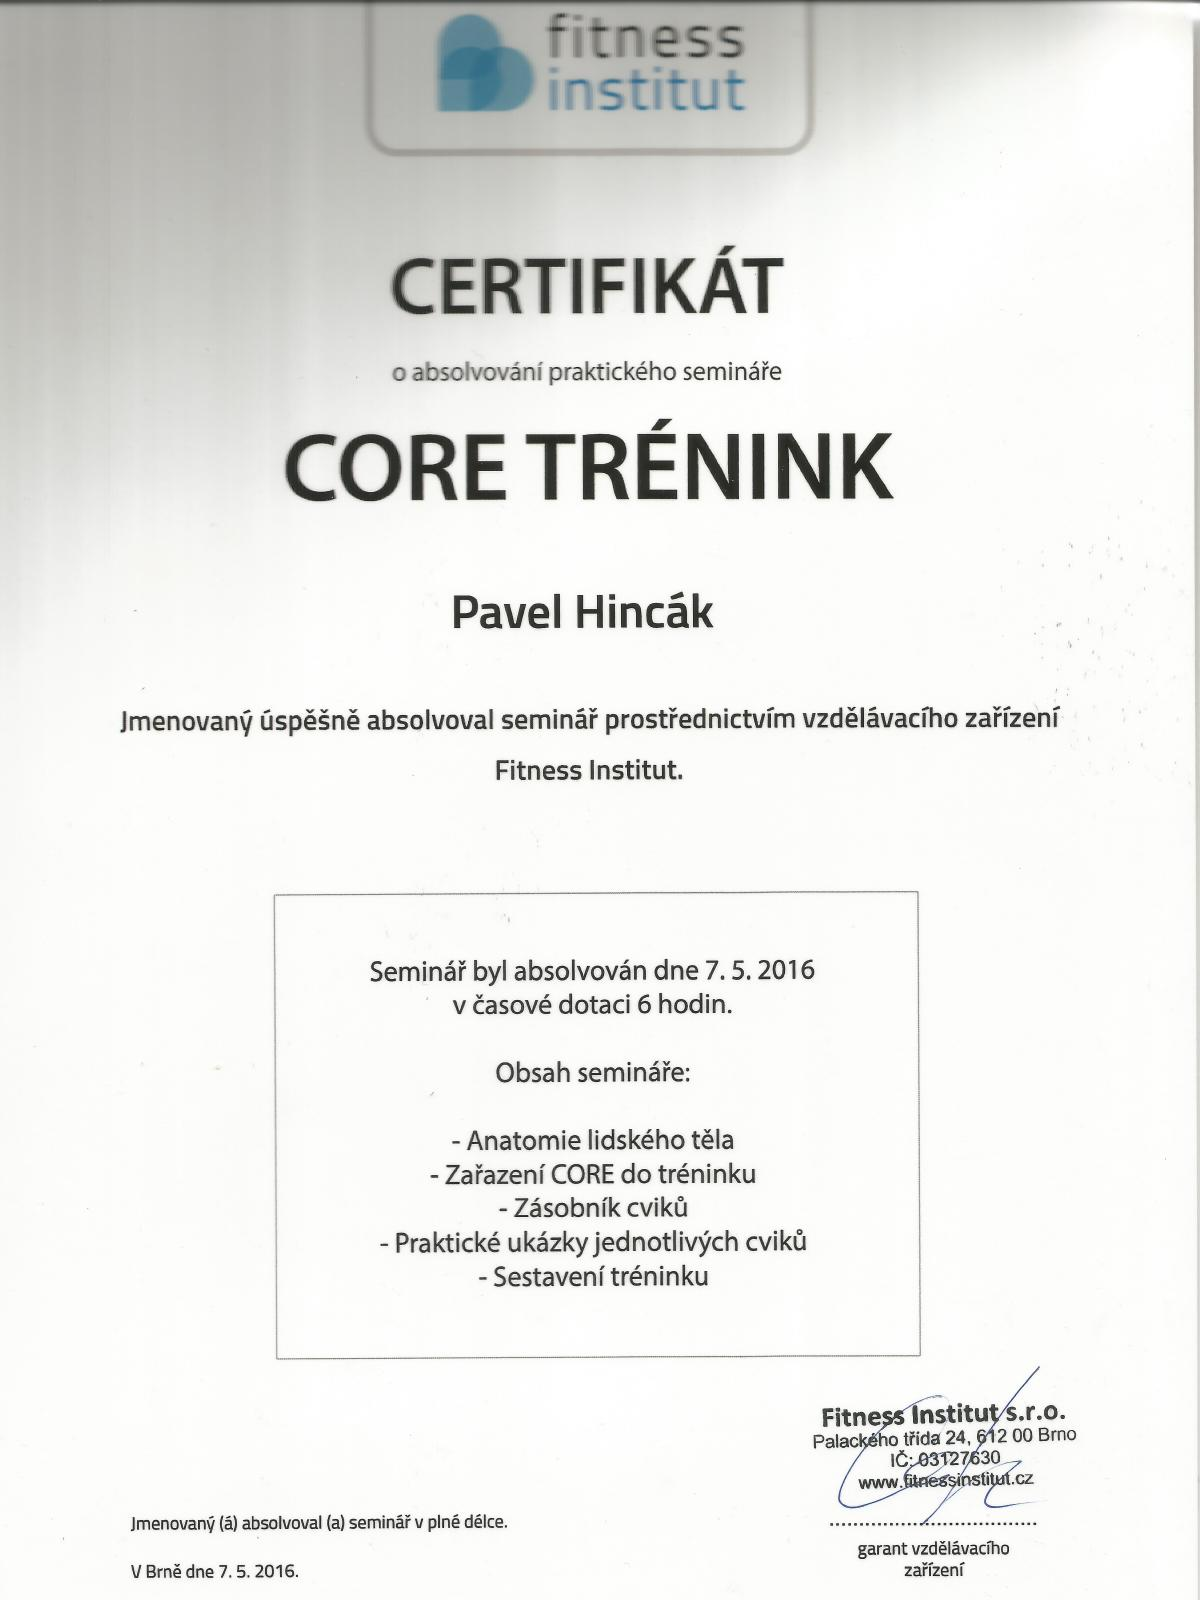 CORE Trenink - Fitness Institut 7.5.2016